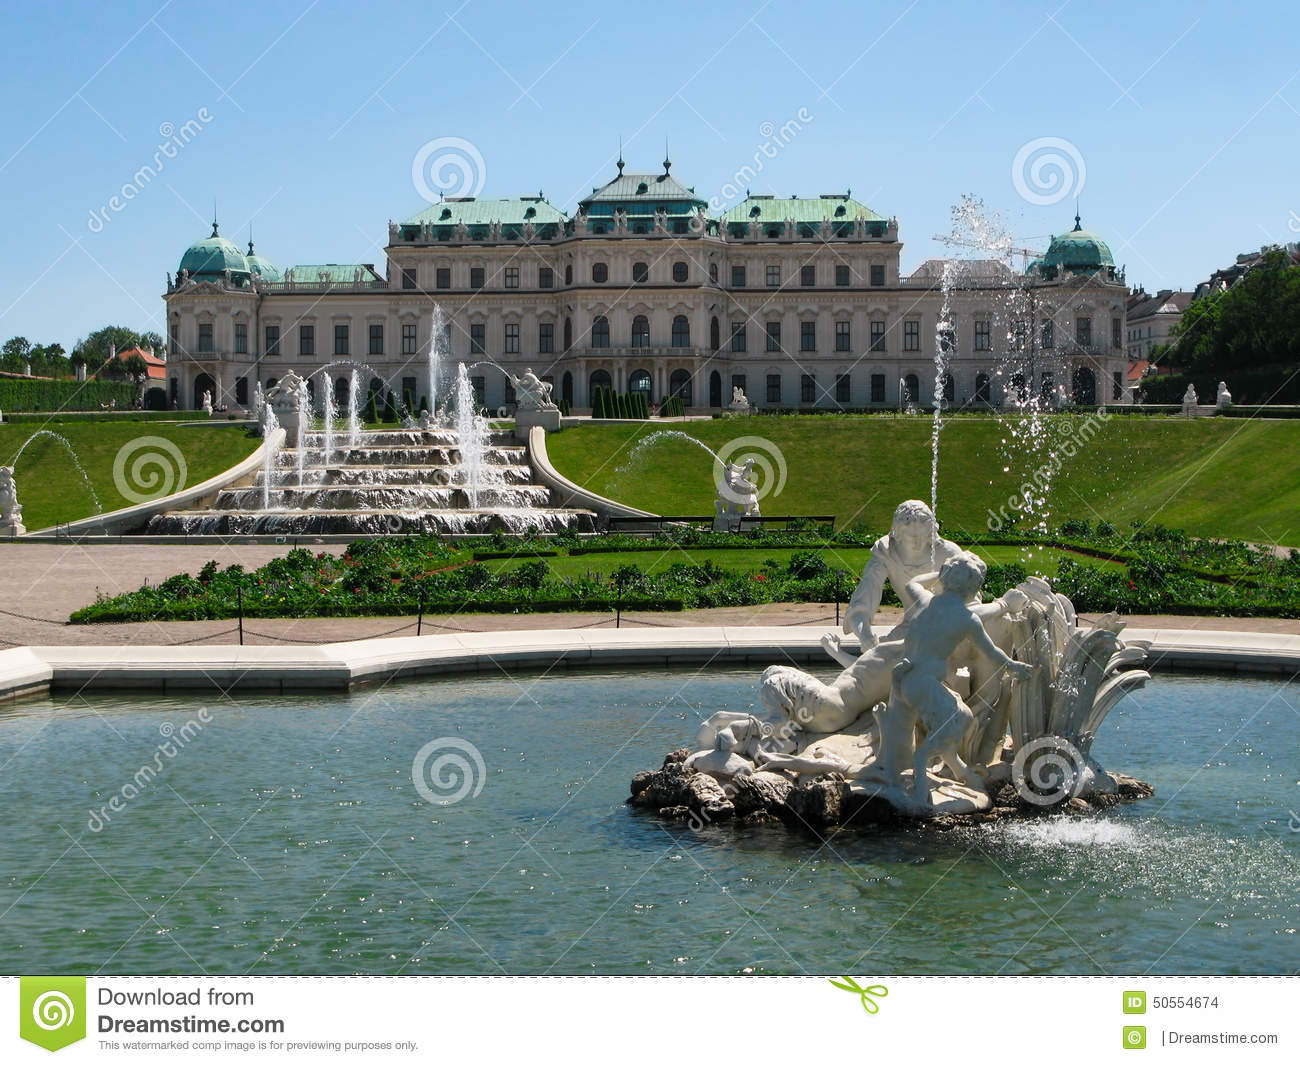 View of the gardens and Upper Belvedere Palace in Vienna, Austria.